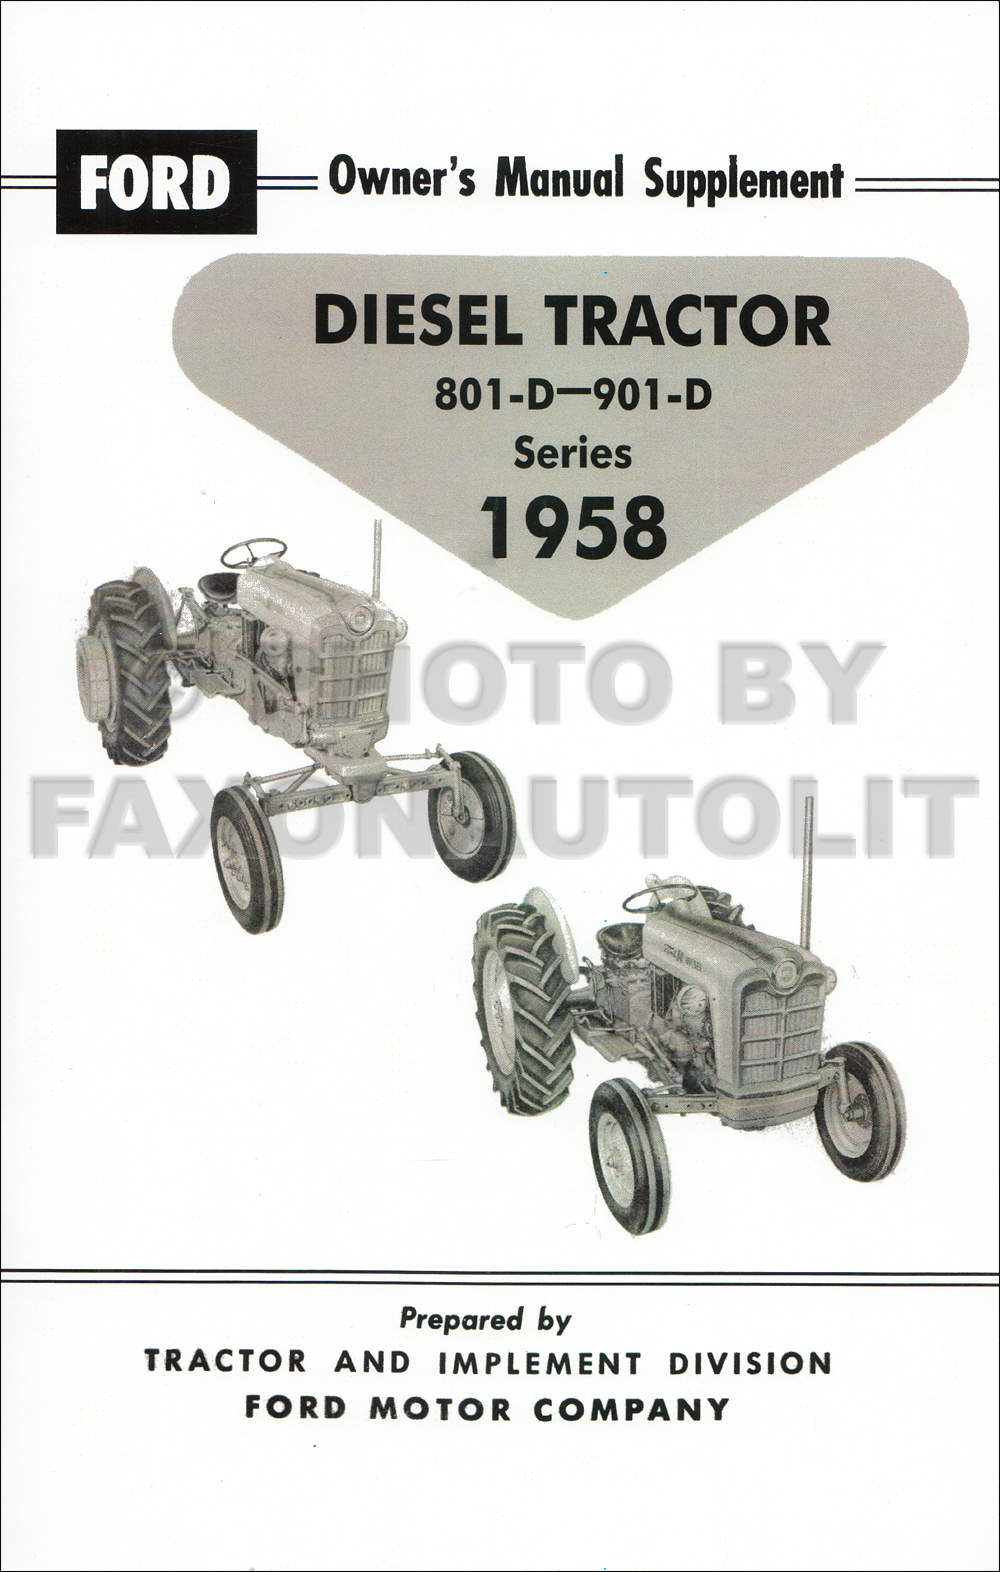 1958-1962 Ford 801-D/901-D Diesel Engine Tractor Owners Handbook Supplement Reprint